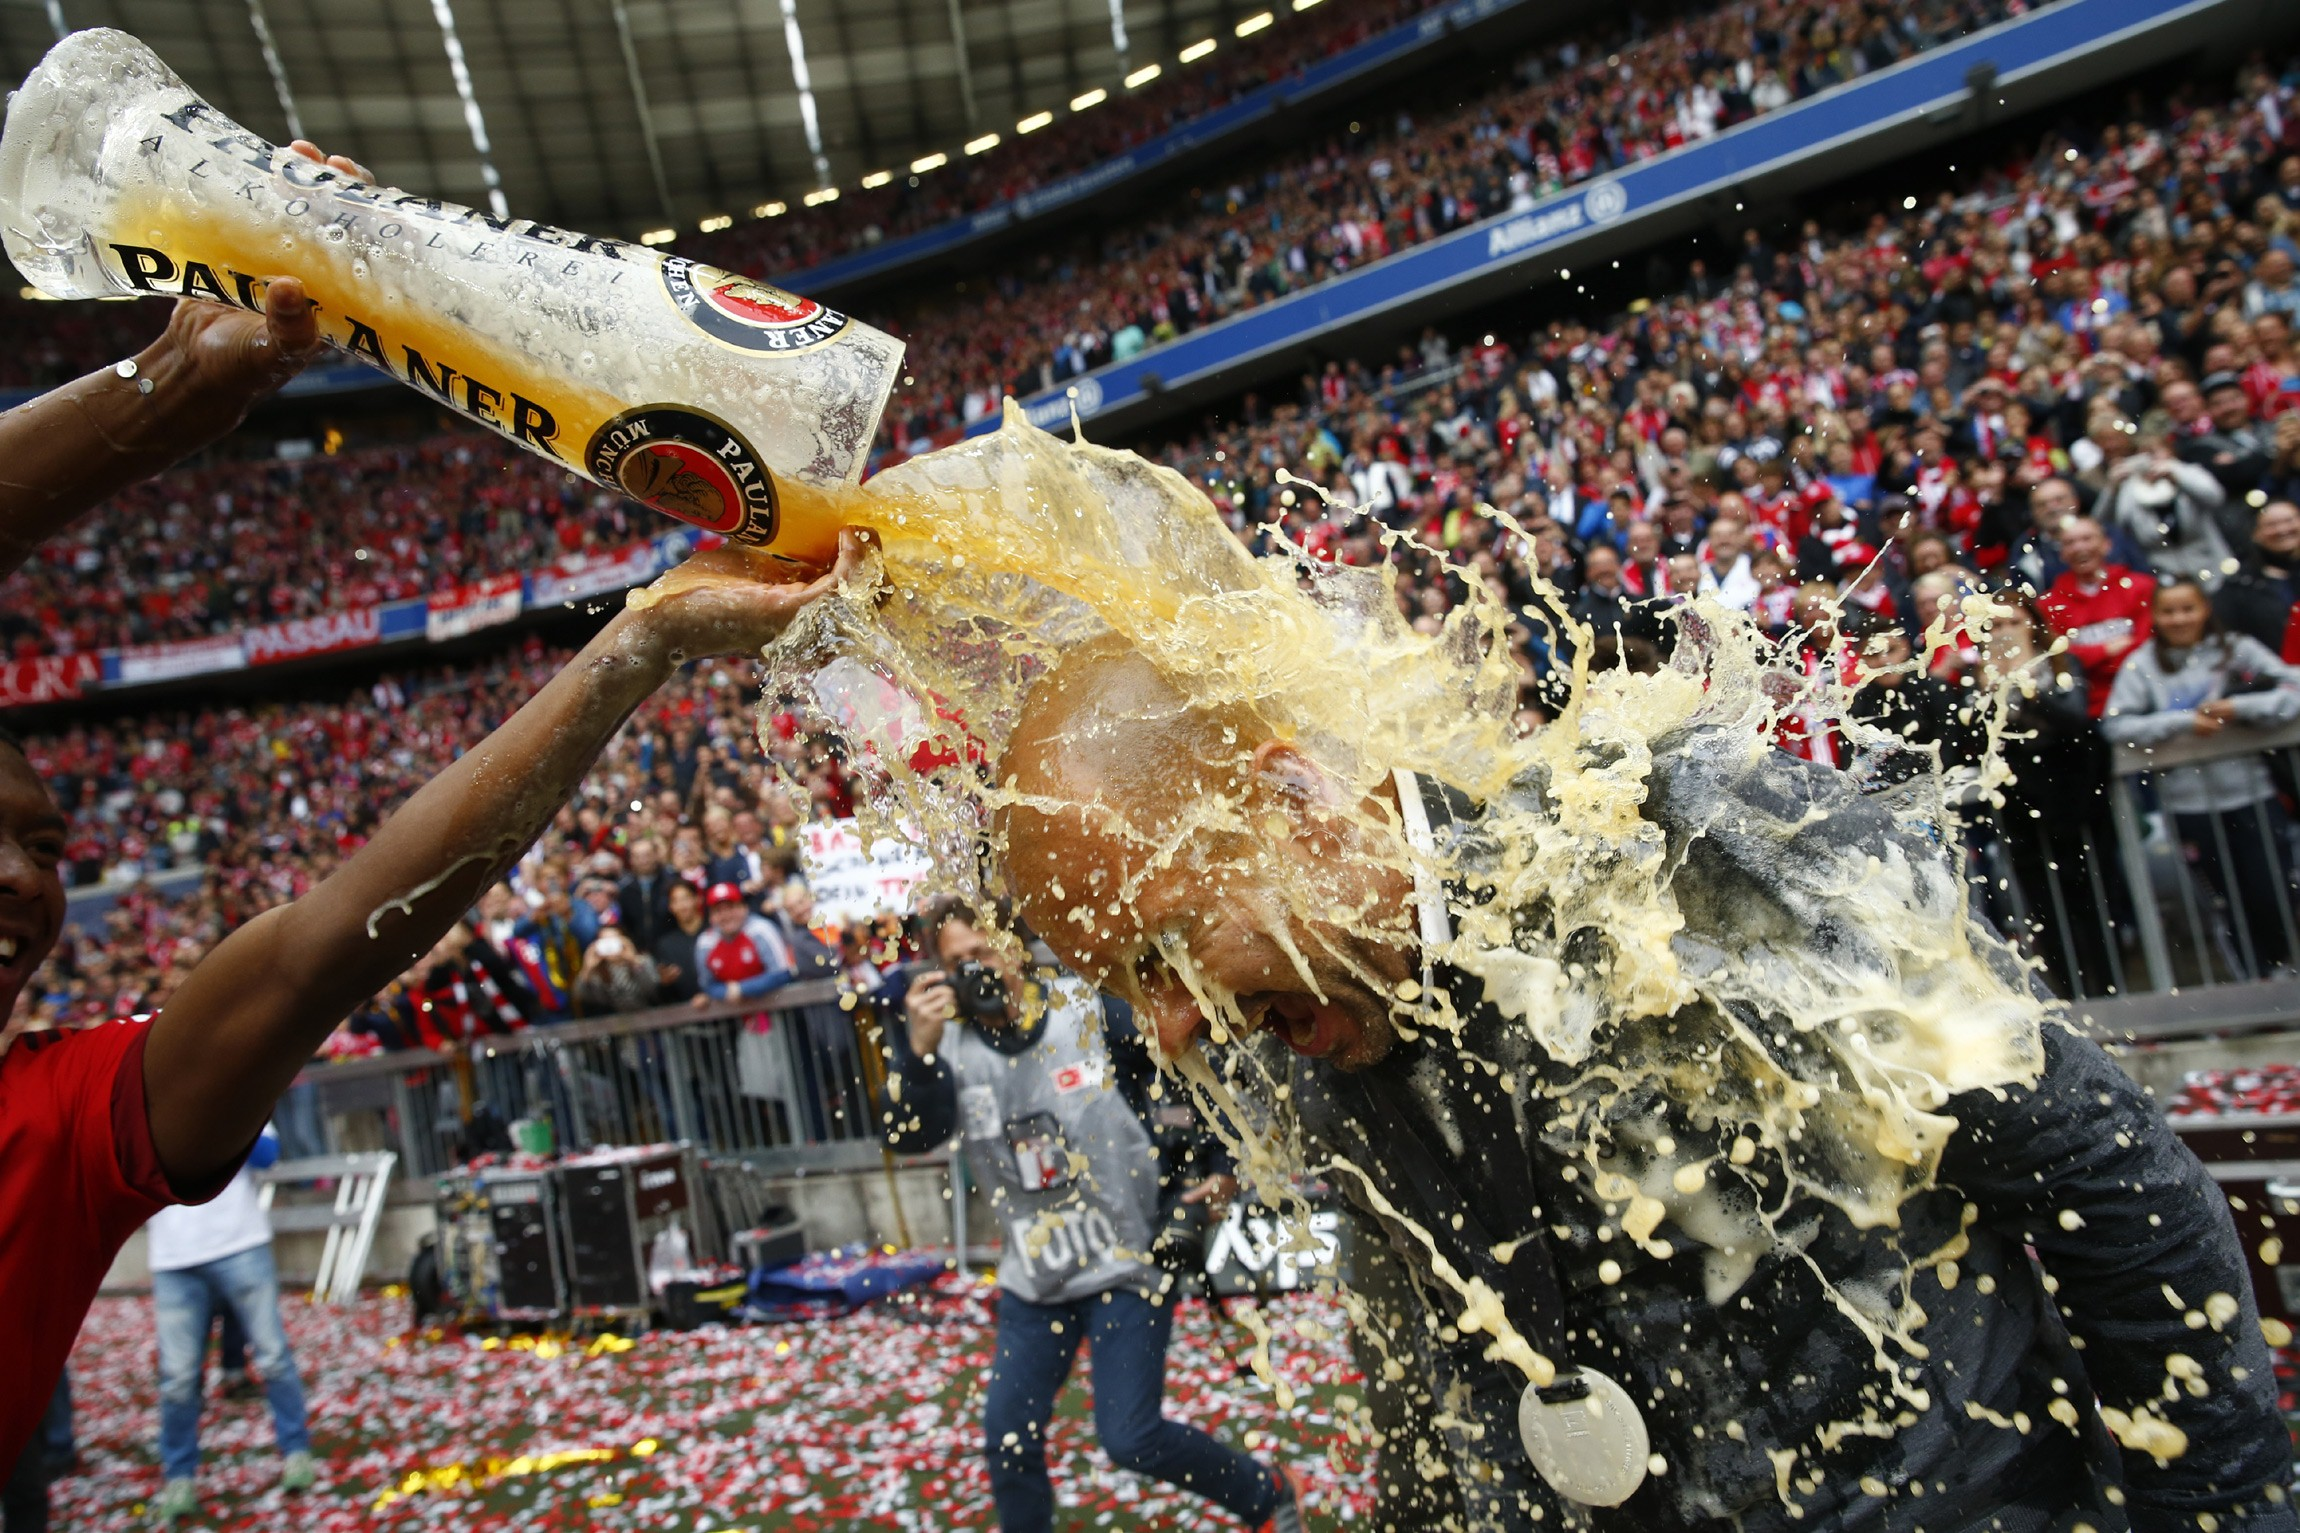 Best sporting pictures of 2015 - Bayern Munich's David Alaba (L) pours beer over coach Pep Guardiola after their final Bundesliga match of the season against FSV Mainz 05 in Munich, May 23, 2015